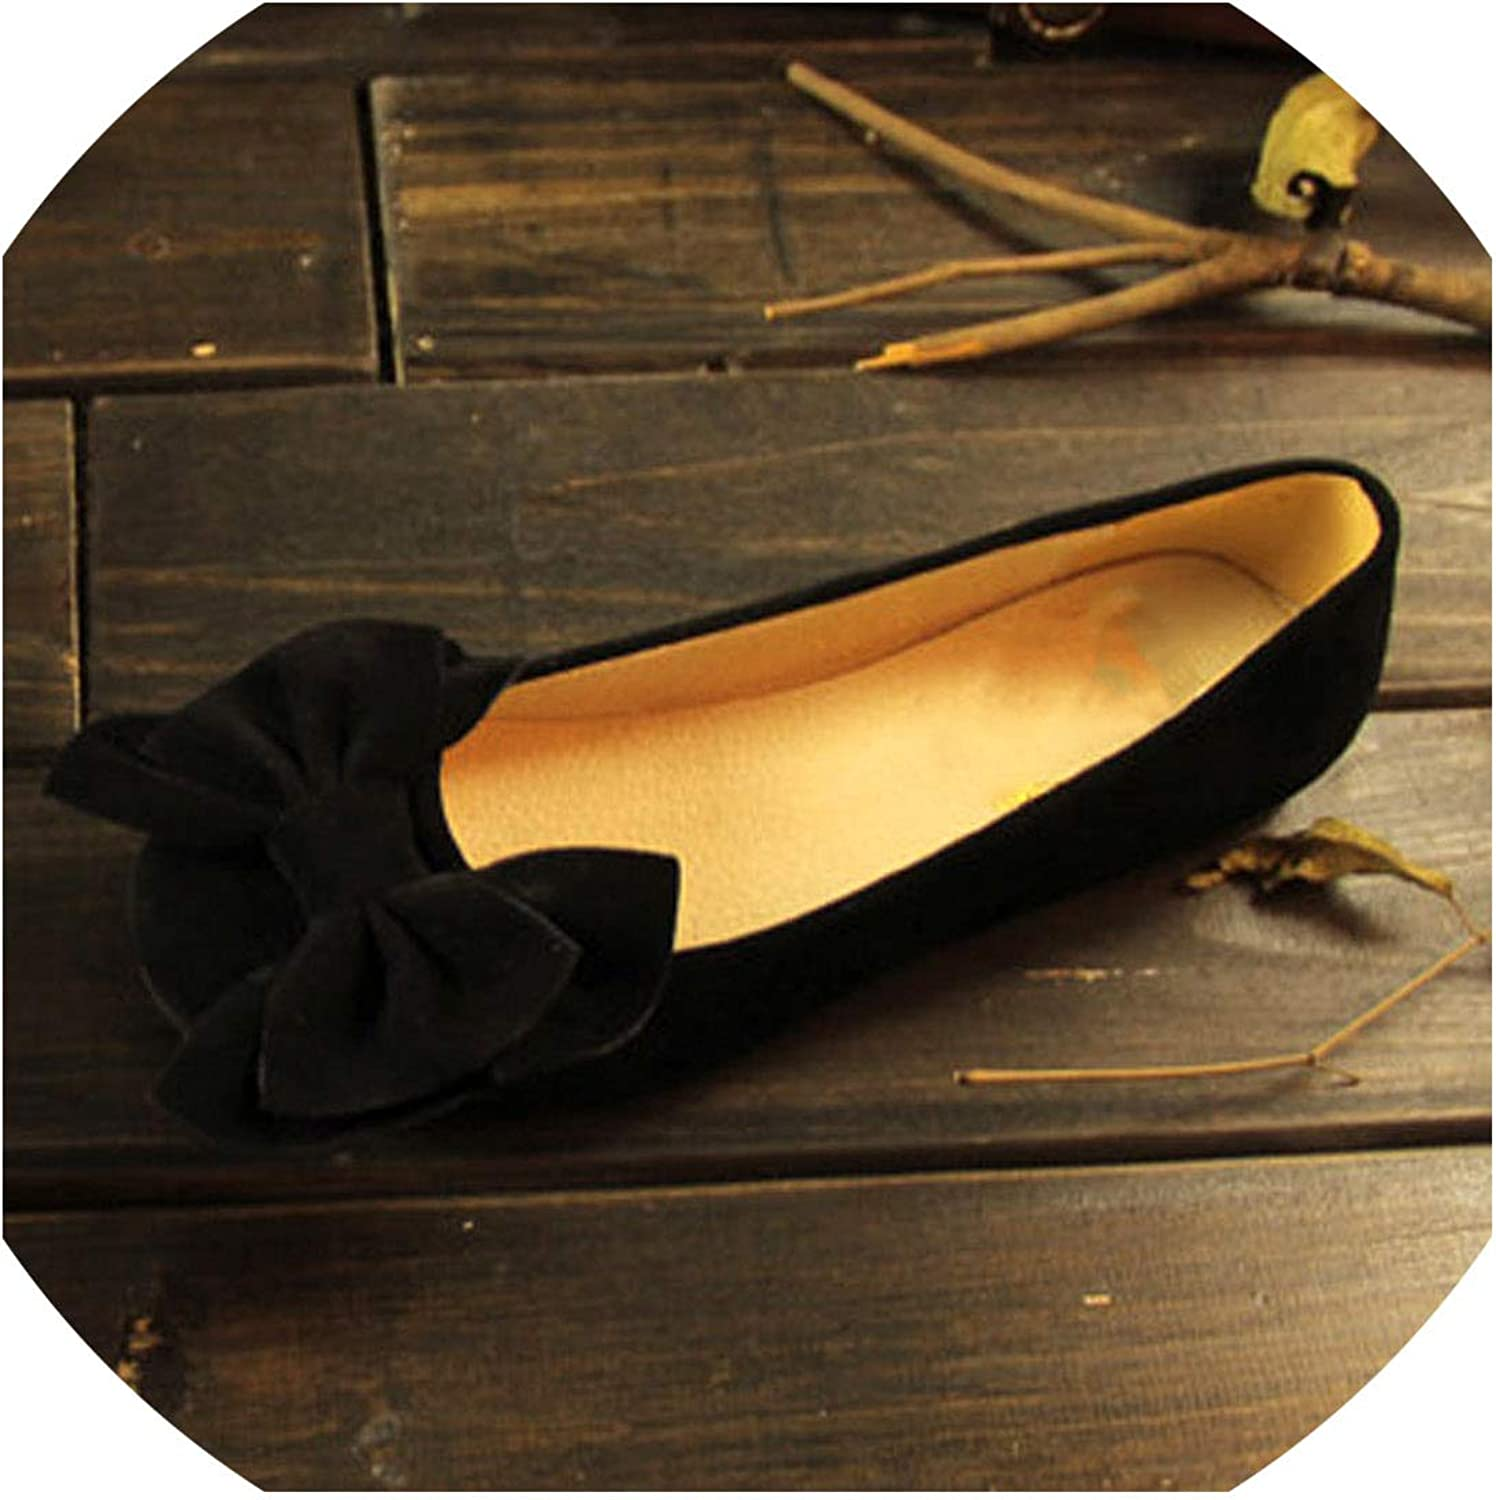 Fashion Bow Shallow Mouth Slip-On Women Flats Vintage Flock Round Toe Ladies Casual Flat Shoes Female Leisure Ballerinas Flats,Black,6